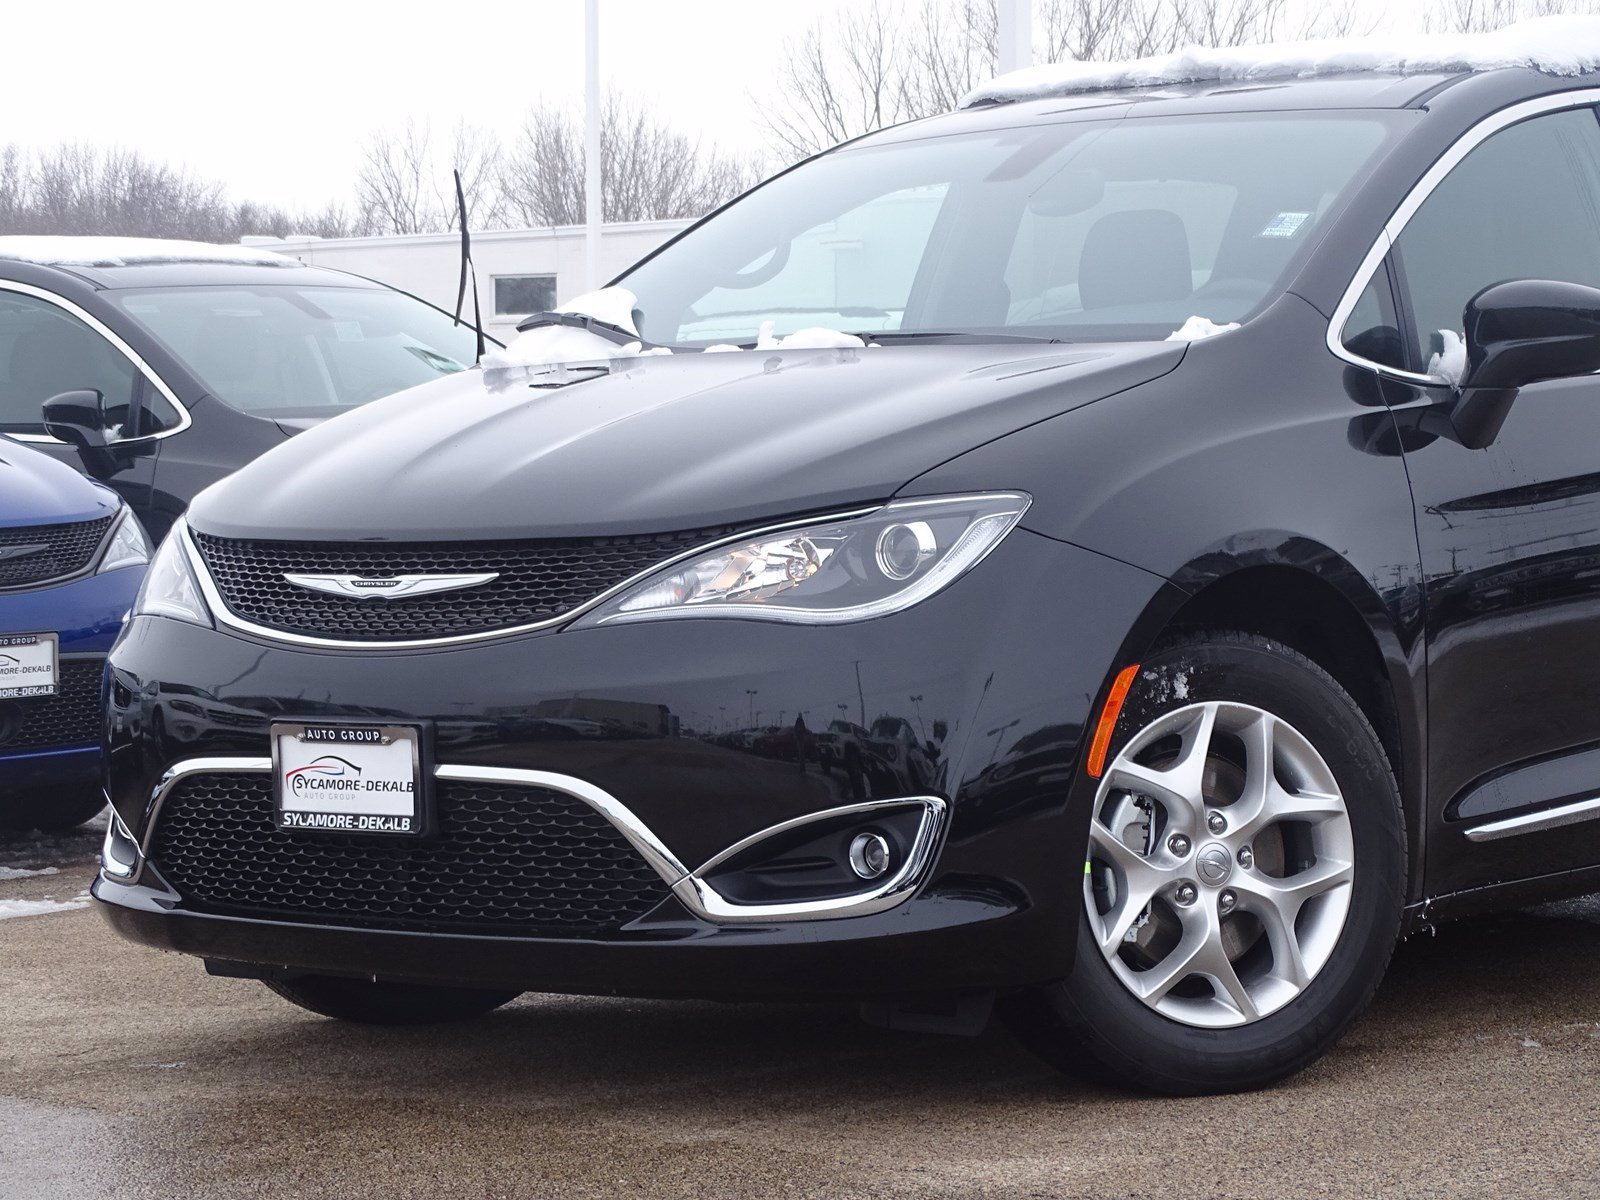 New 2020 Chrysler Pacifica Touring L 35th Anniversary